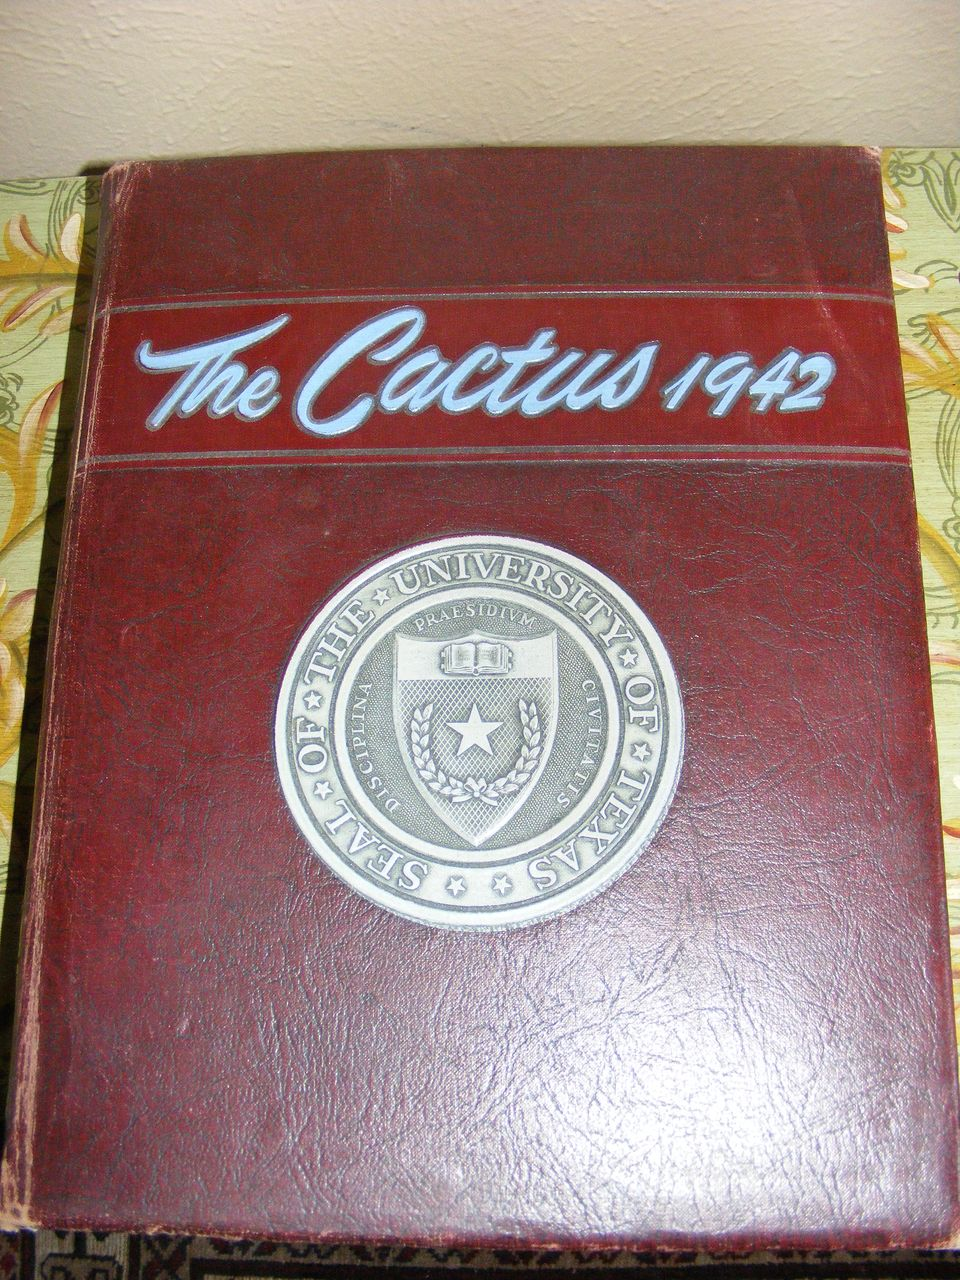 1942 University of Texas Yearbook - The Cactus